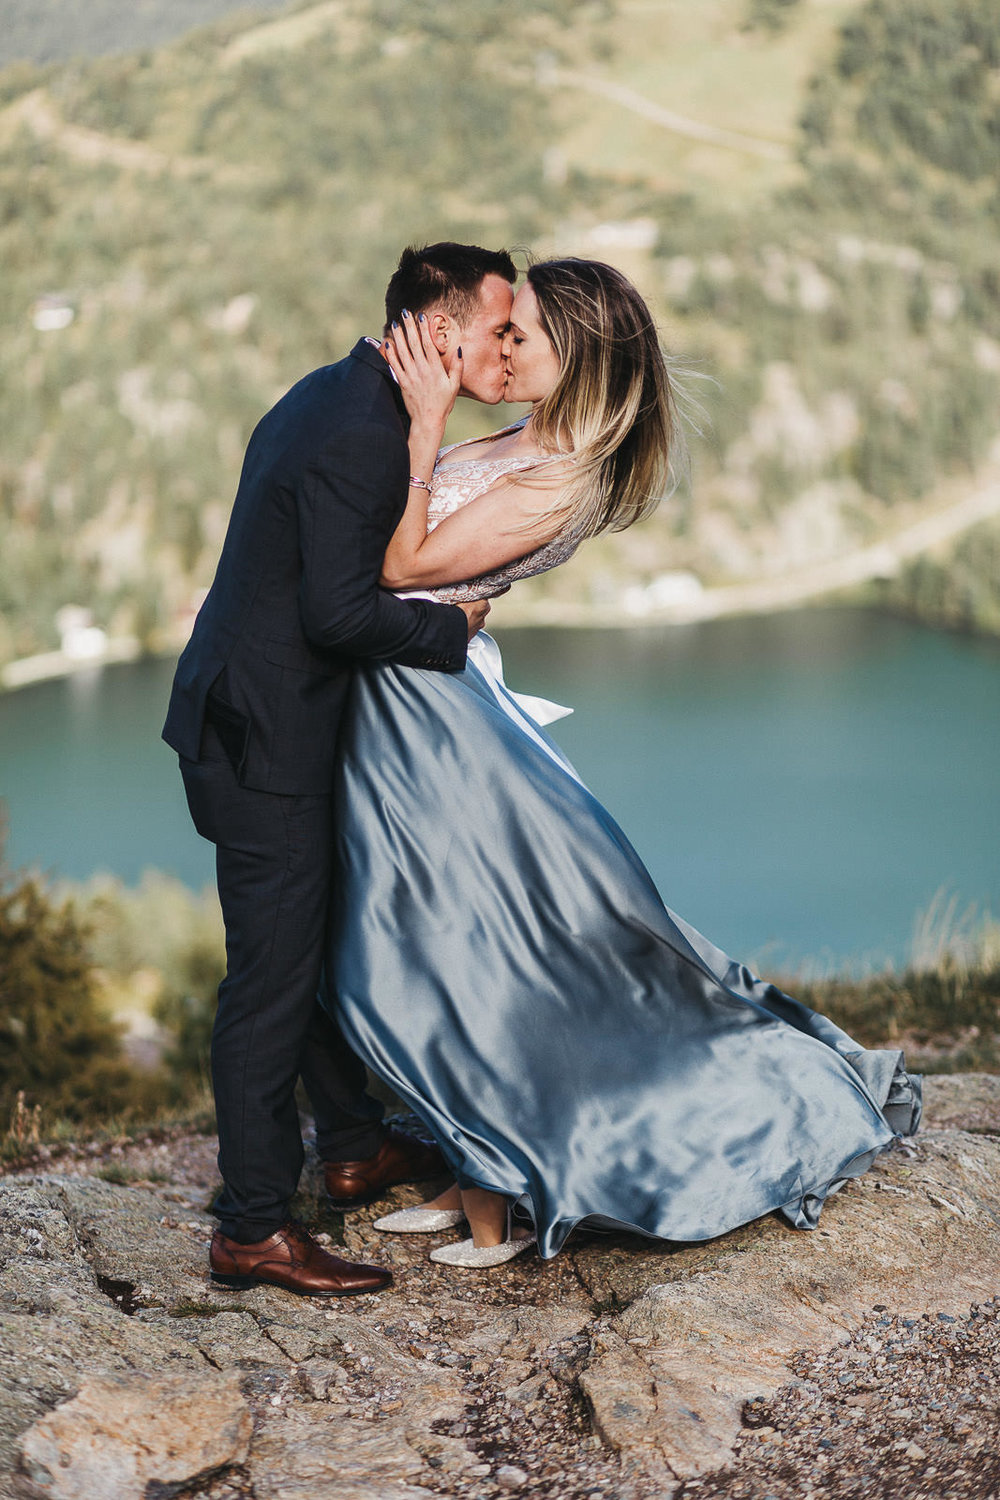 adventure-wedding-elopement-photographer-austria-daniela-vallant-salzburg-bergochzeit-panoramaalm-almhochzeit-mountain-elopement-alps-mountain-wedding-alpine